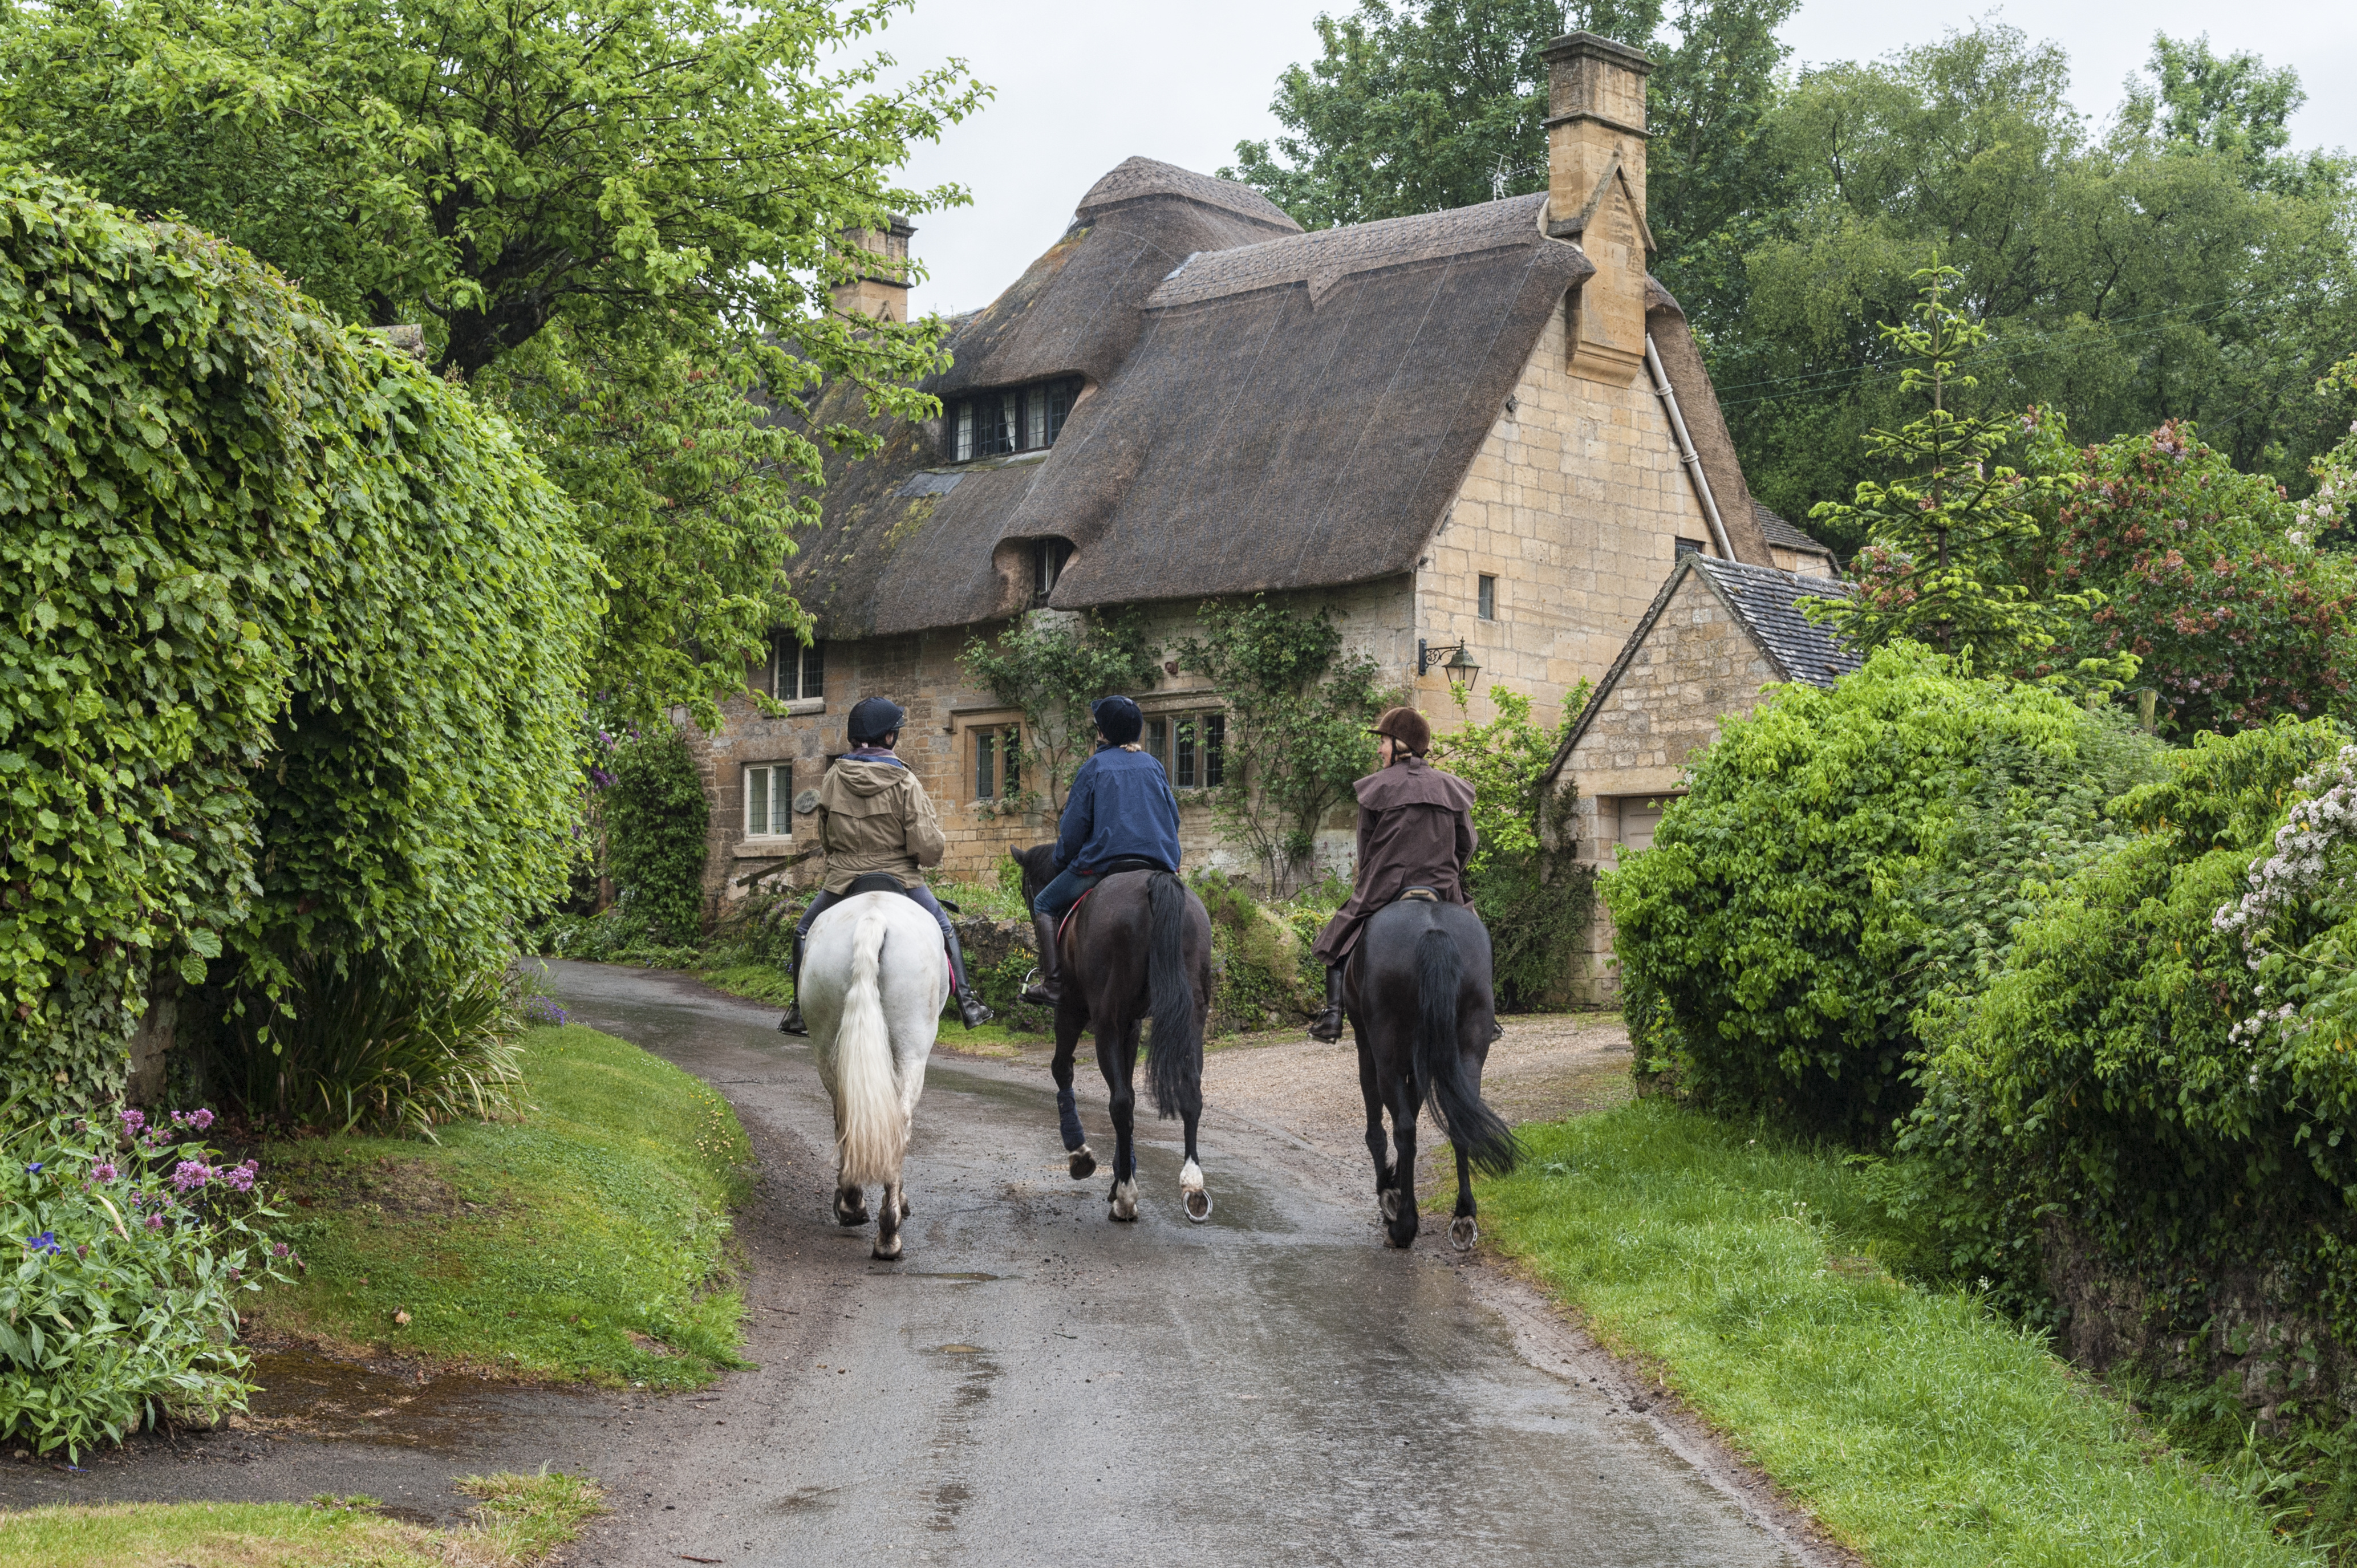 people and horses near cottages in the village of Stanton, Cotswolds district of Gloucestershire.